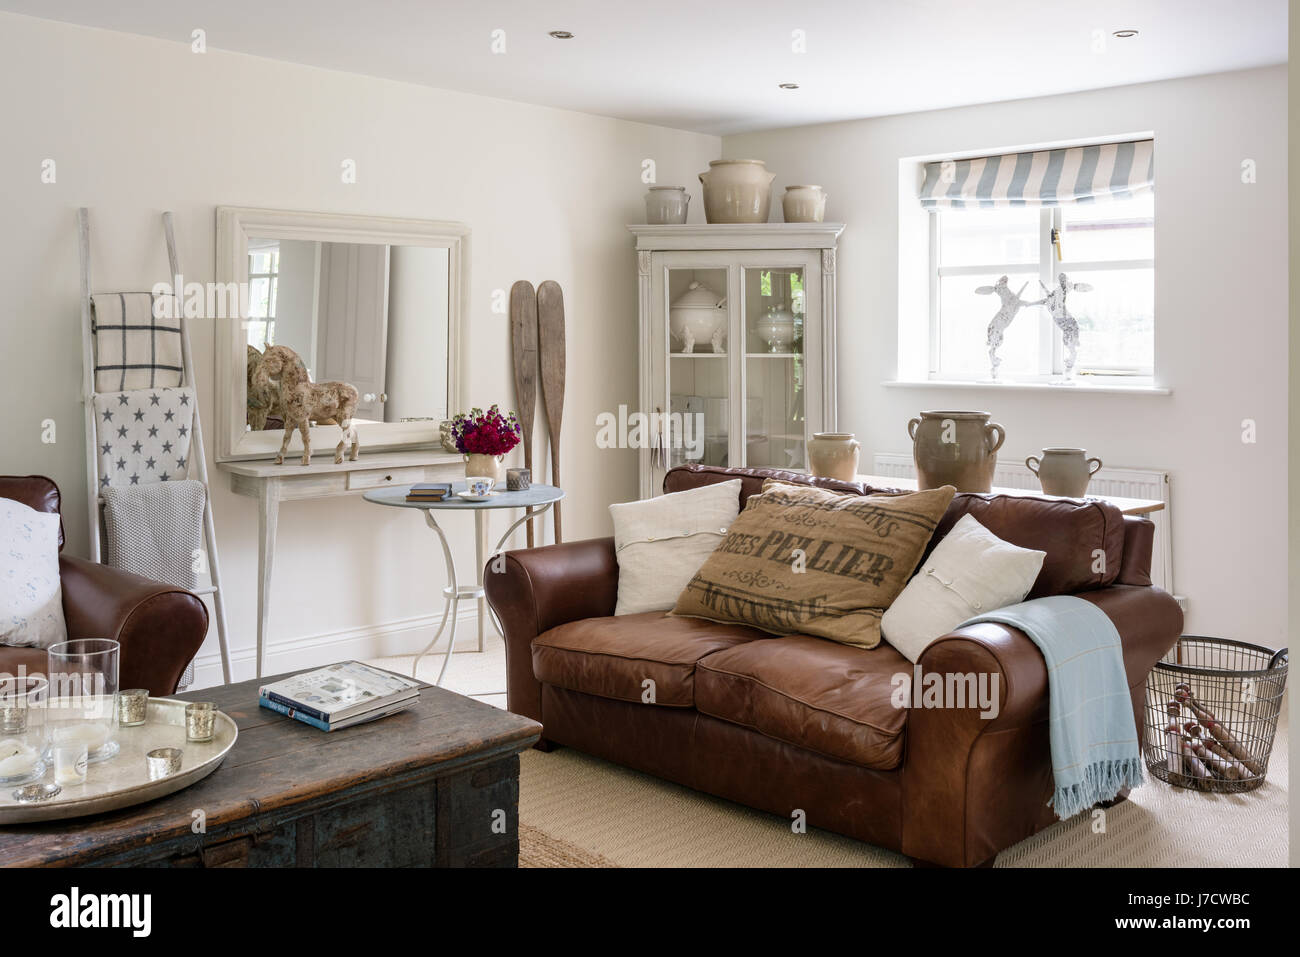 leather sofa designs for living room india paint colors images laura ashley and grey armoire from scandi in sitting with indian dowry chest decorative oars the walls are painted po